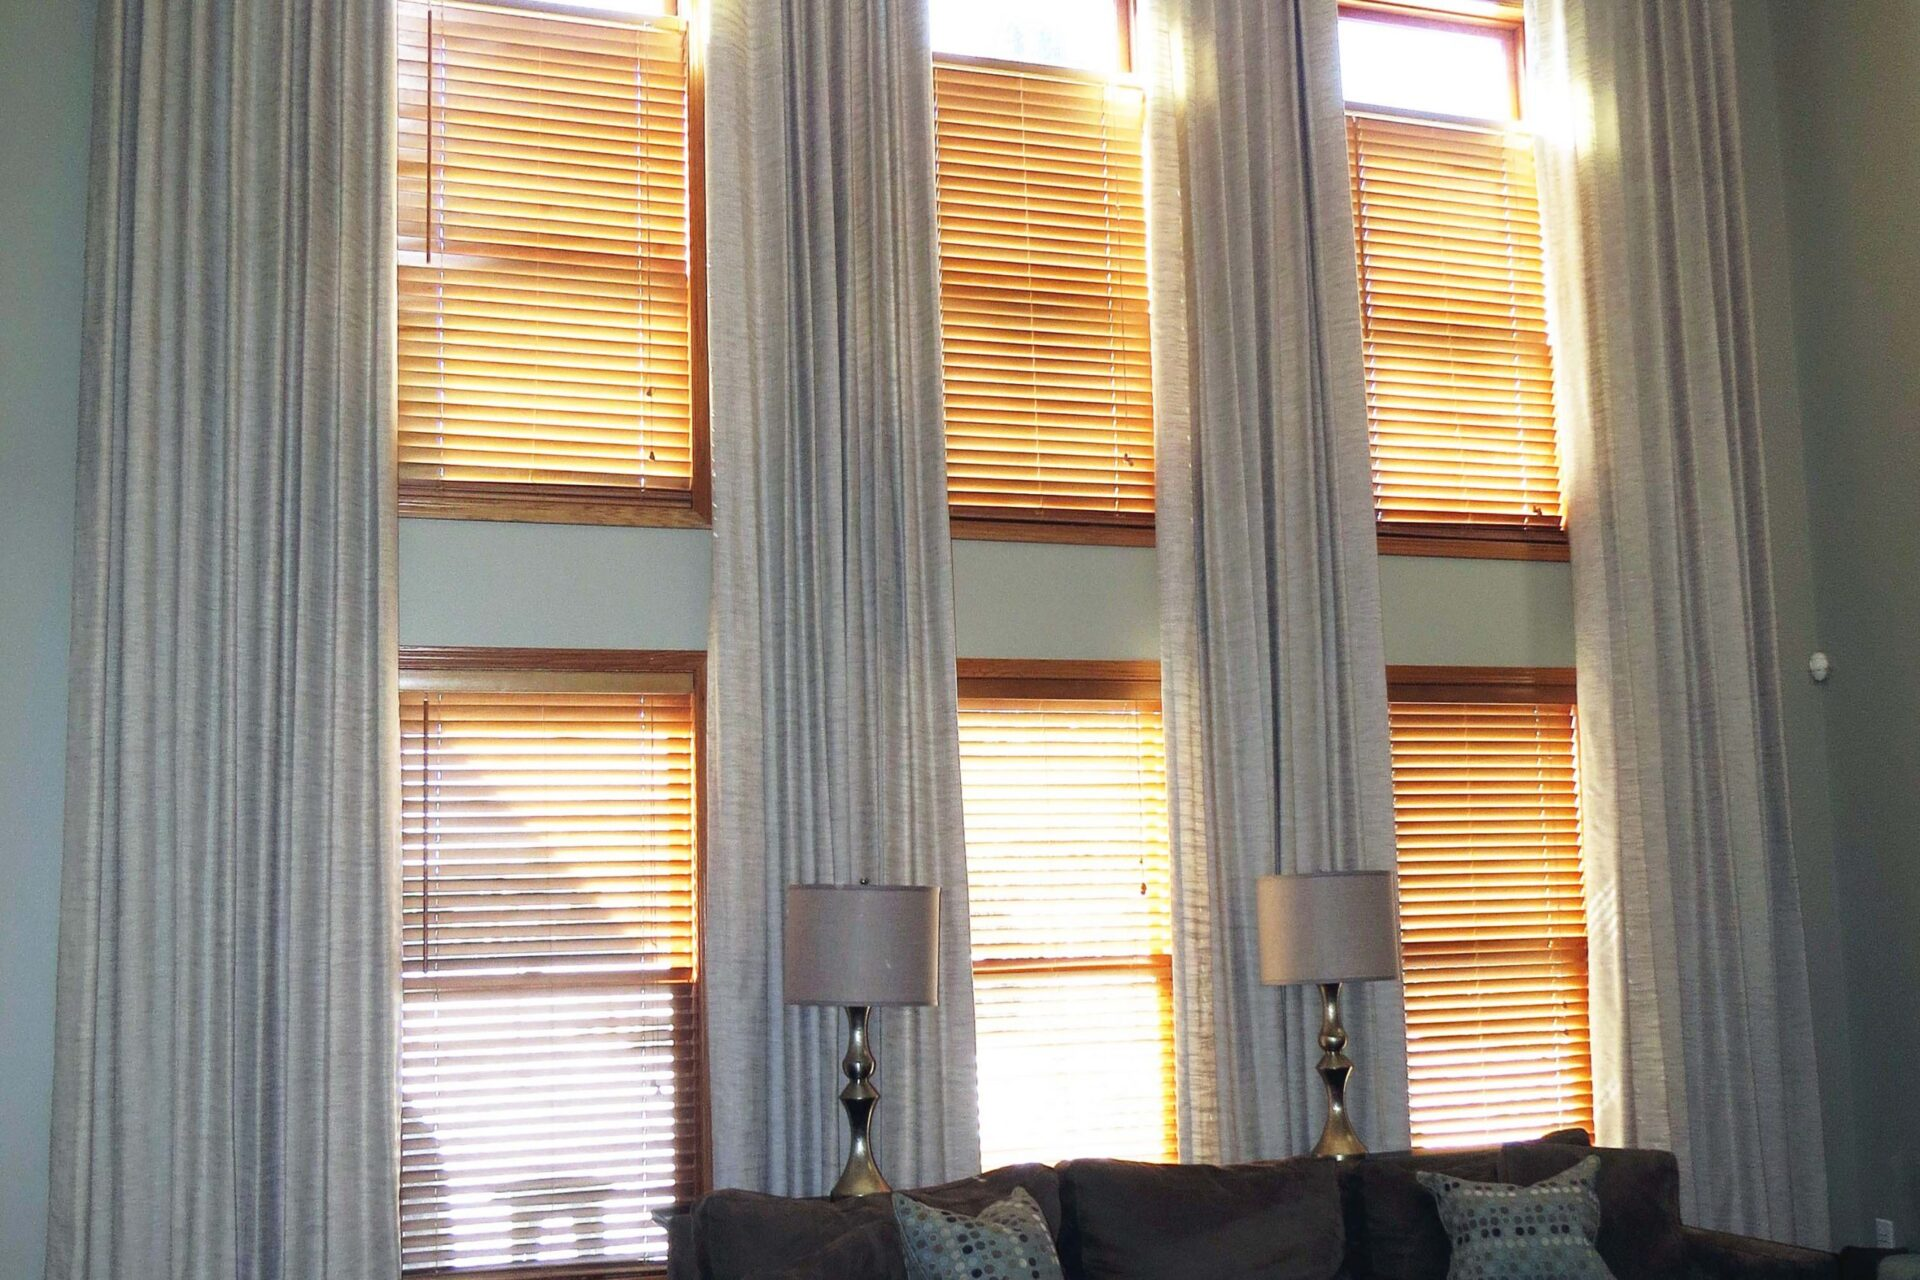 Wood Blinds from Window Treatments by Design - Deer Park Illinois